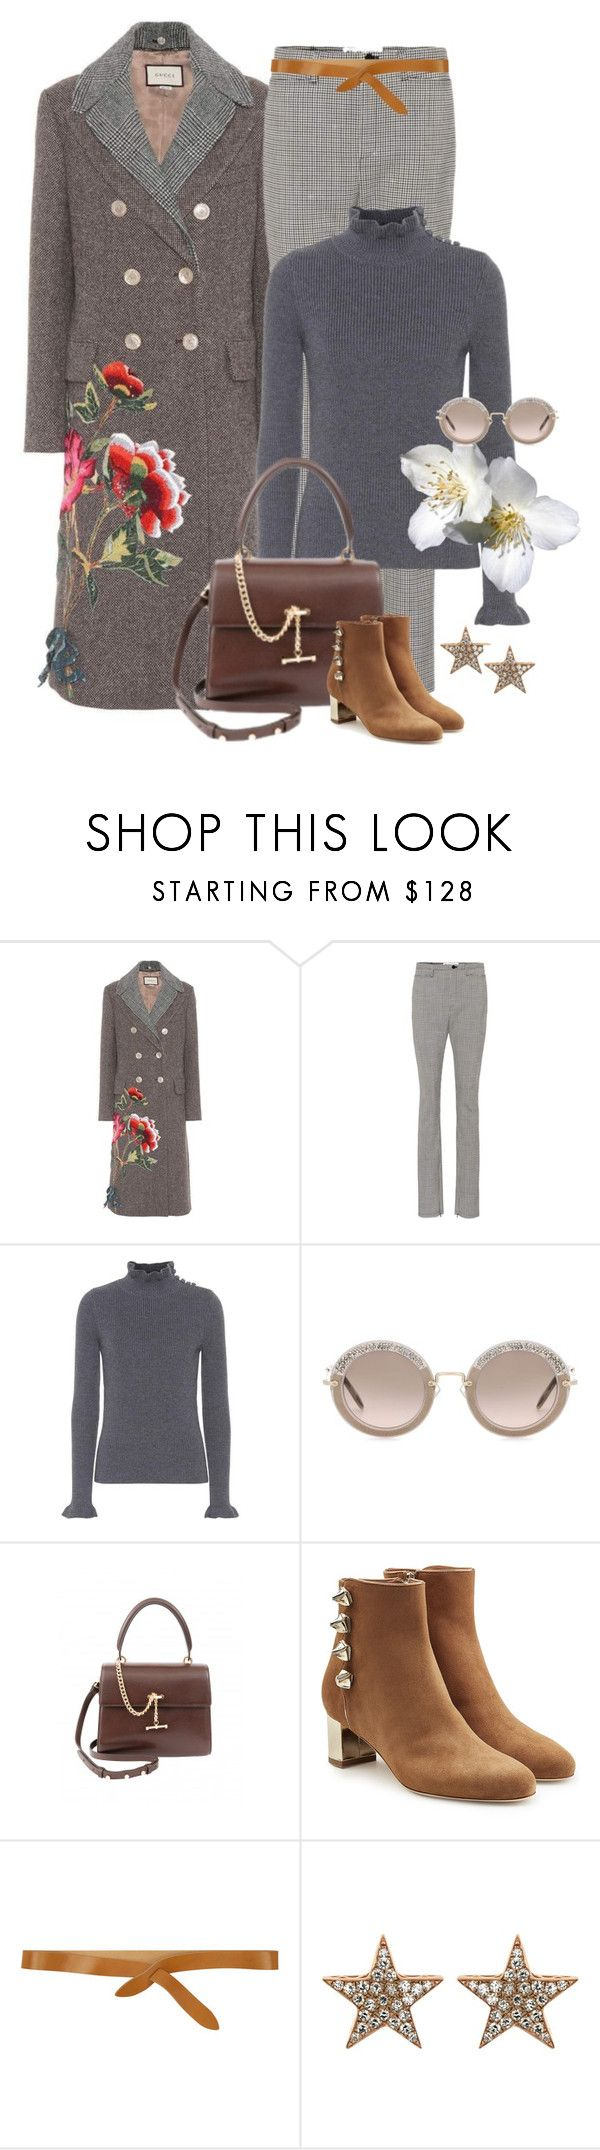 """""""TV Anchor"""" by jacque-reid ❤ liked on Polyvore featuring Balenciaga, Pologeorgis, Malone Souliers, Isabel Marant and Selim Mouzannar"""